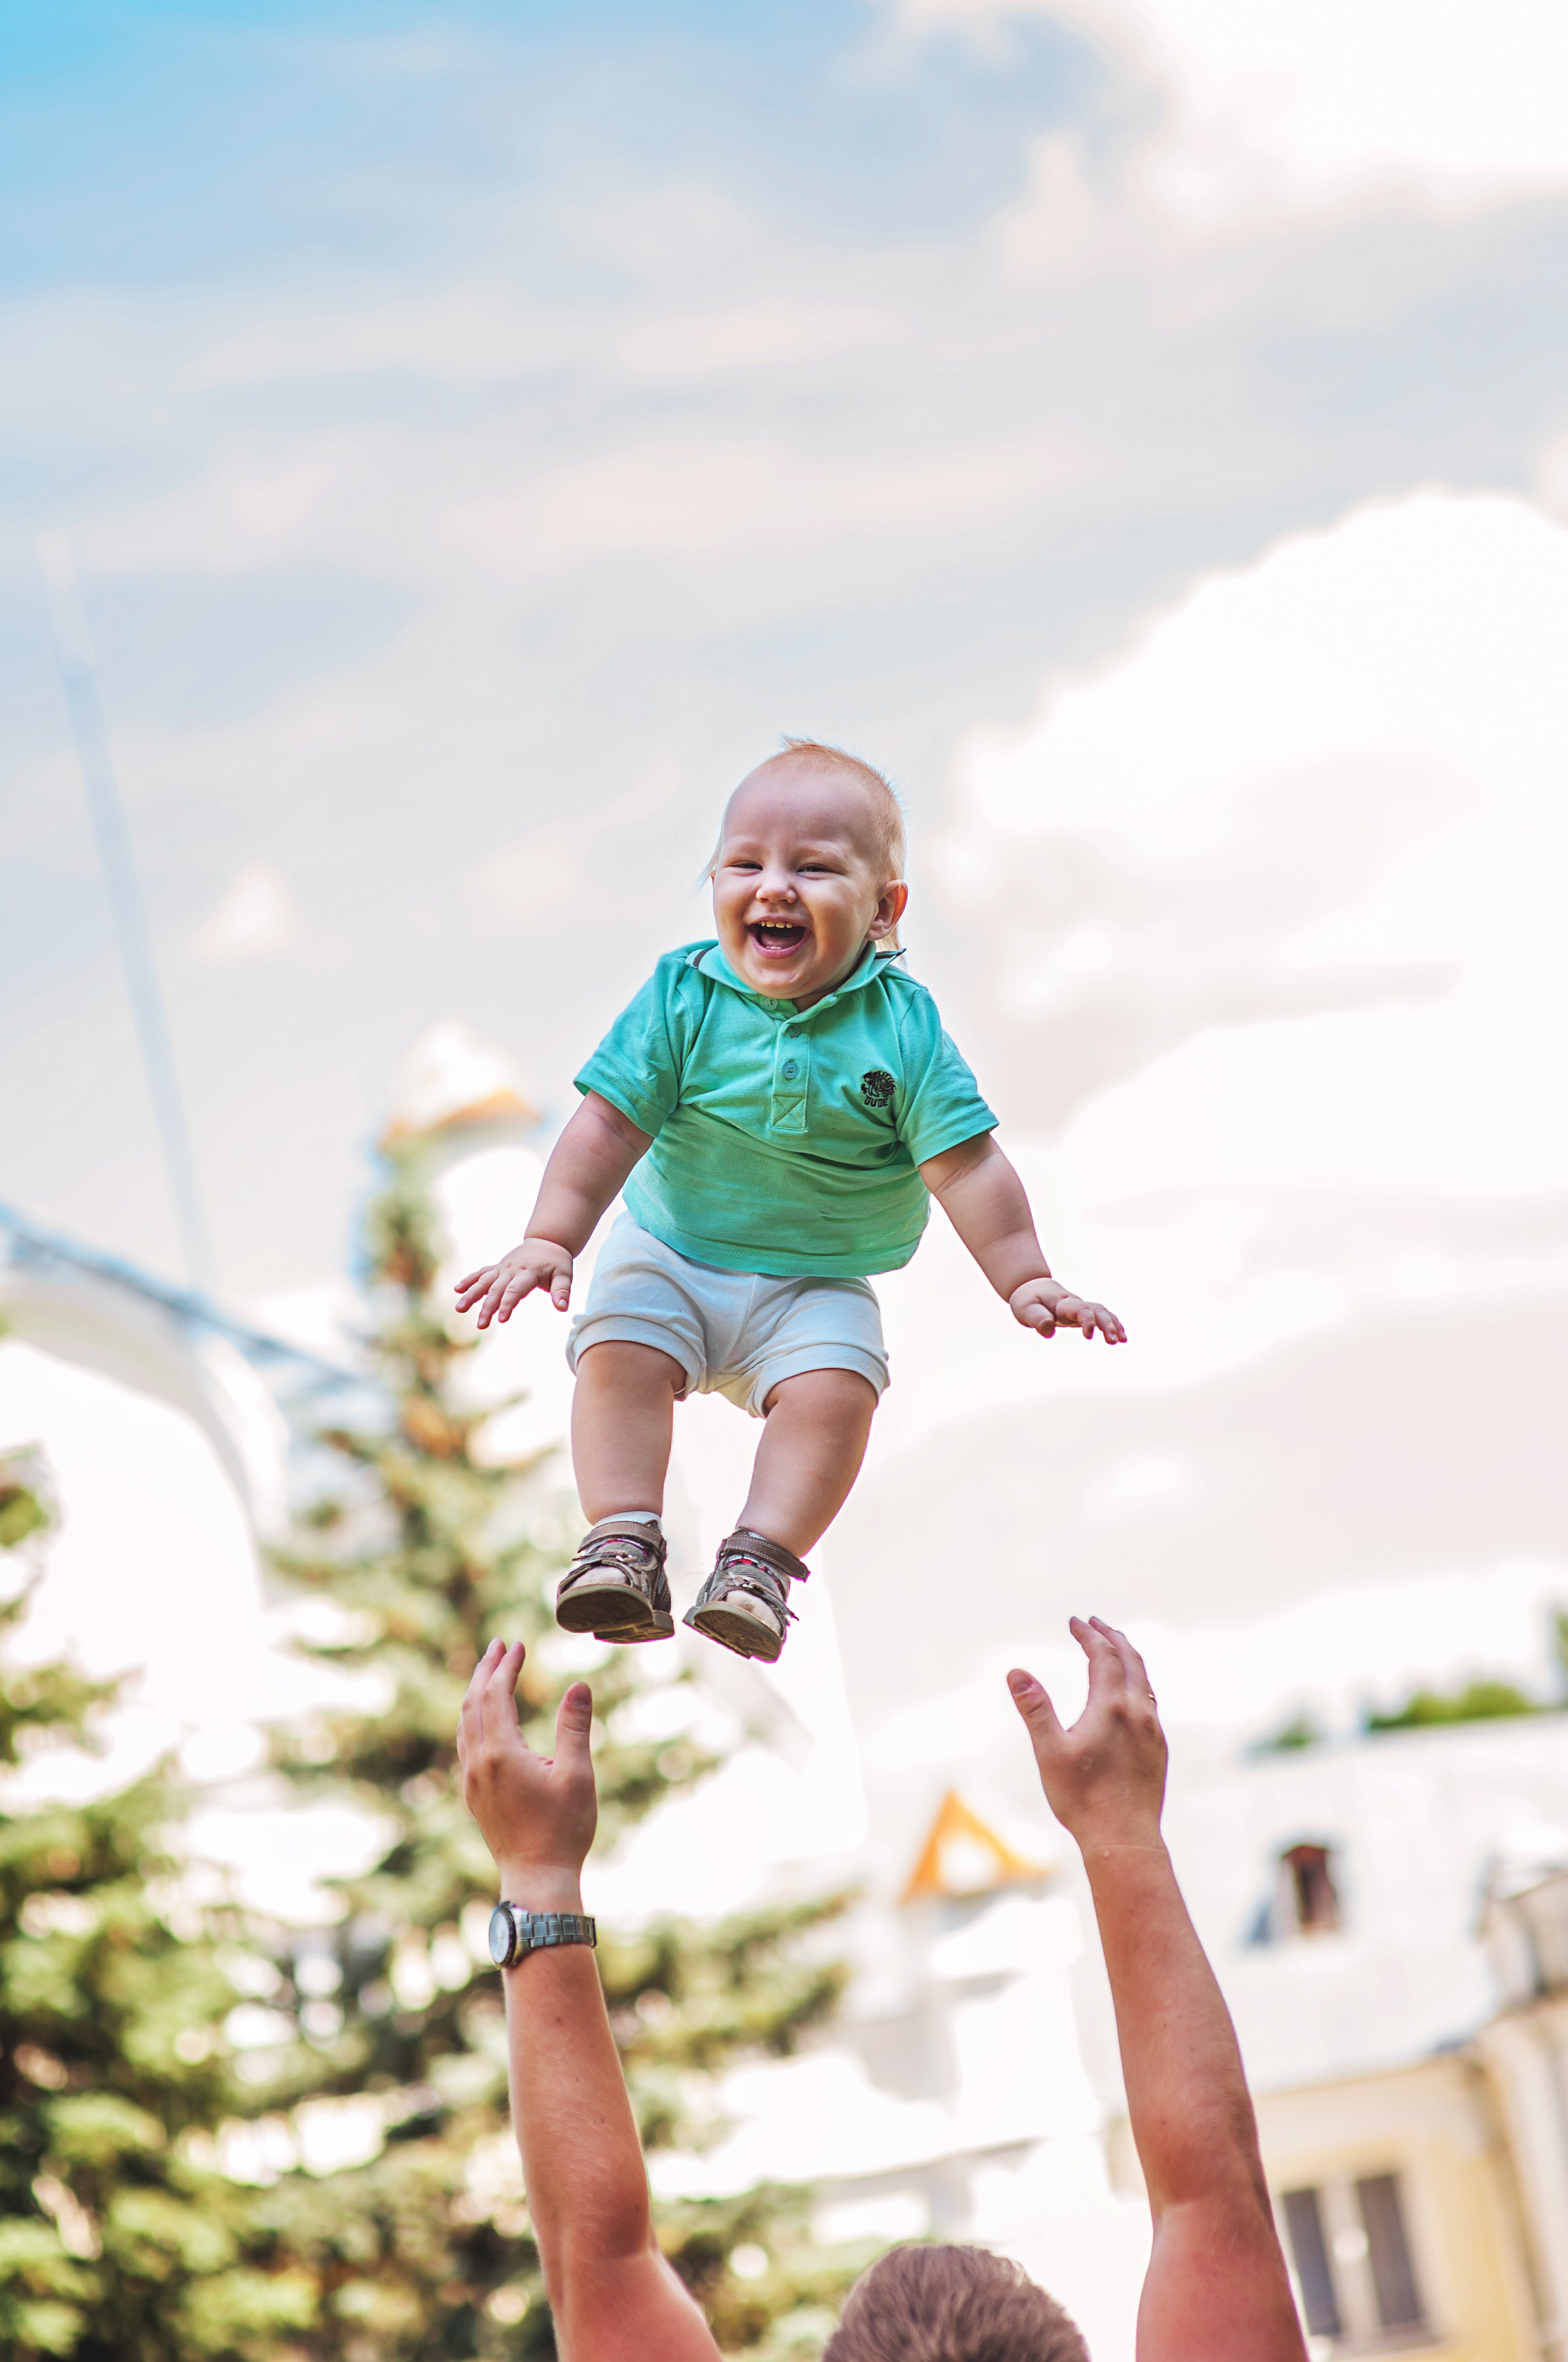 Free stock photo of child, fly, happiness, kid